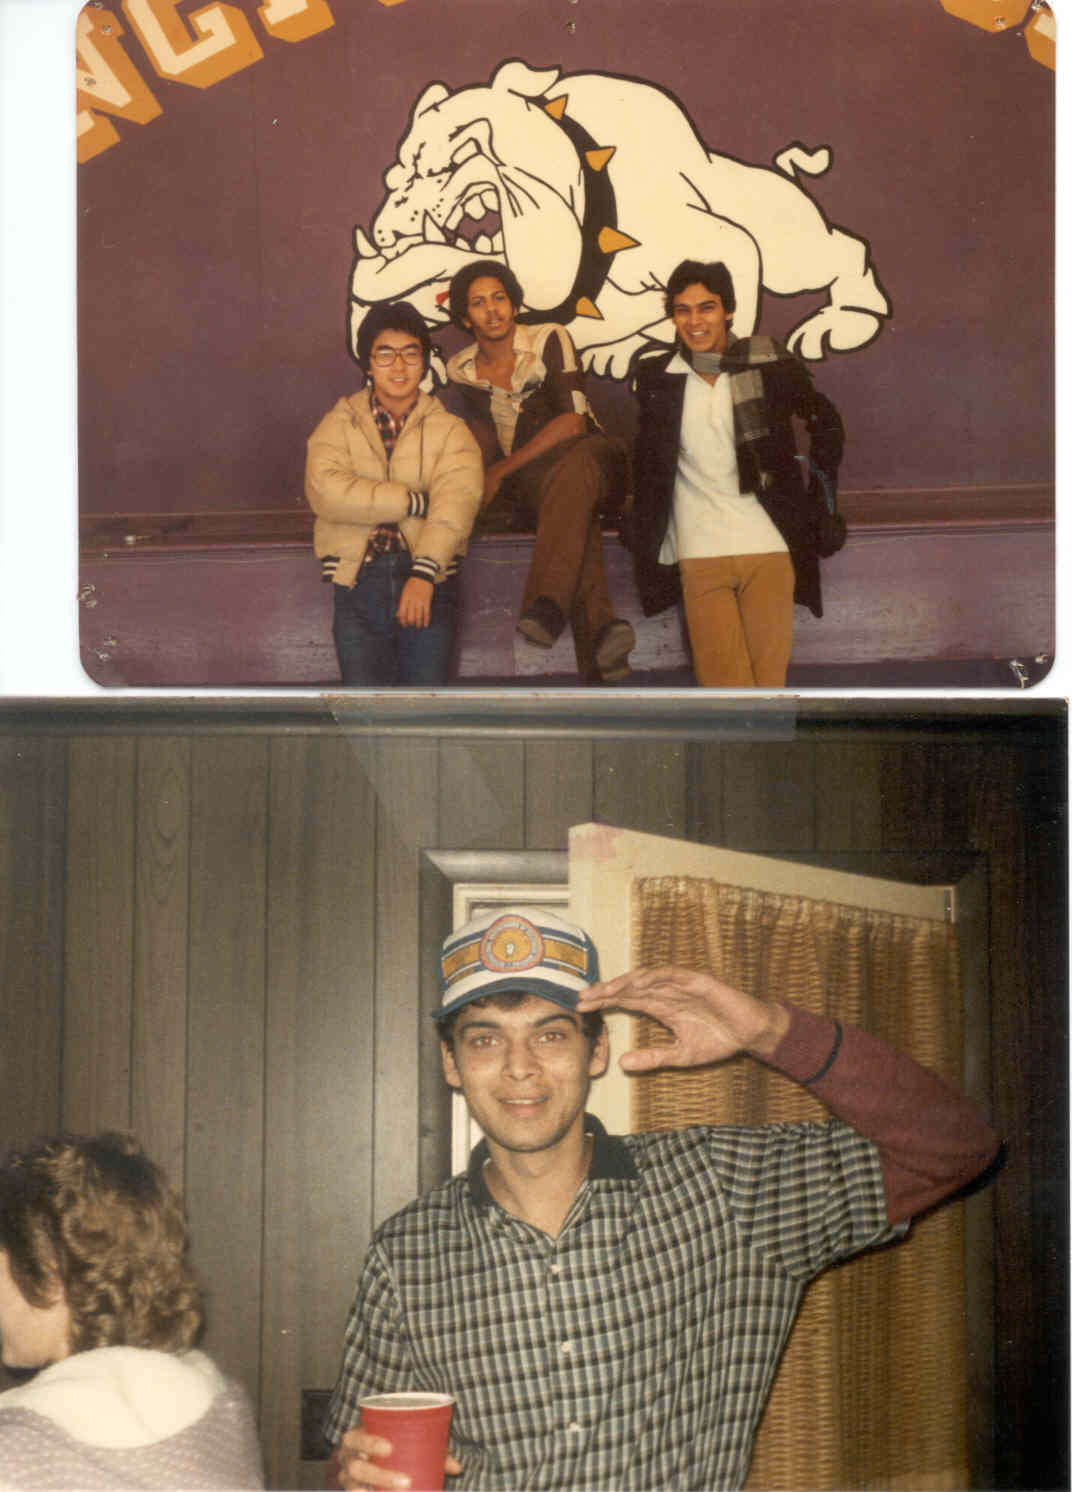 CLICK TO ENLARGE - Myself and my room-mate Masuda (from Japan) & Cedric Porter (from Cuba) at Springfield College in Illinois (1980)